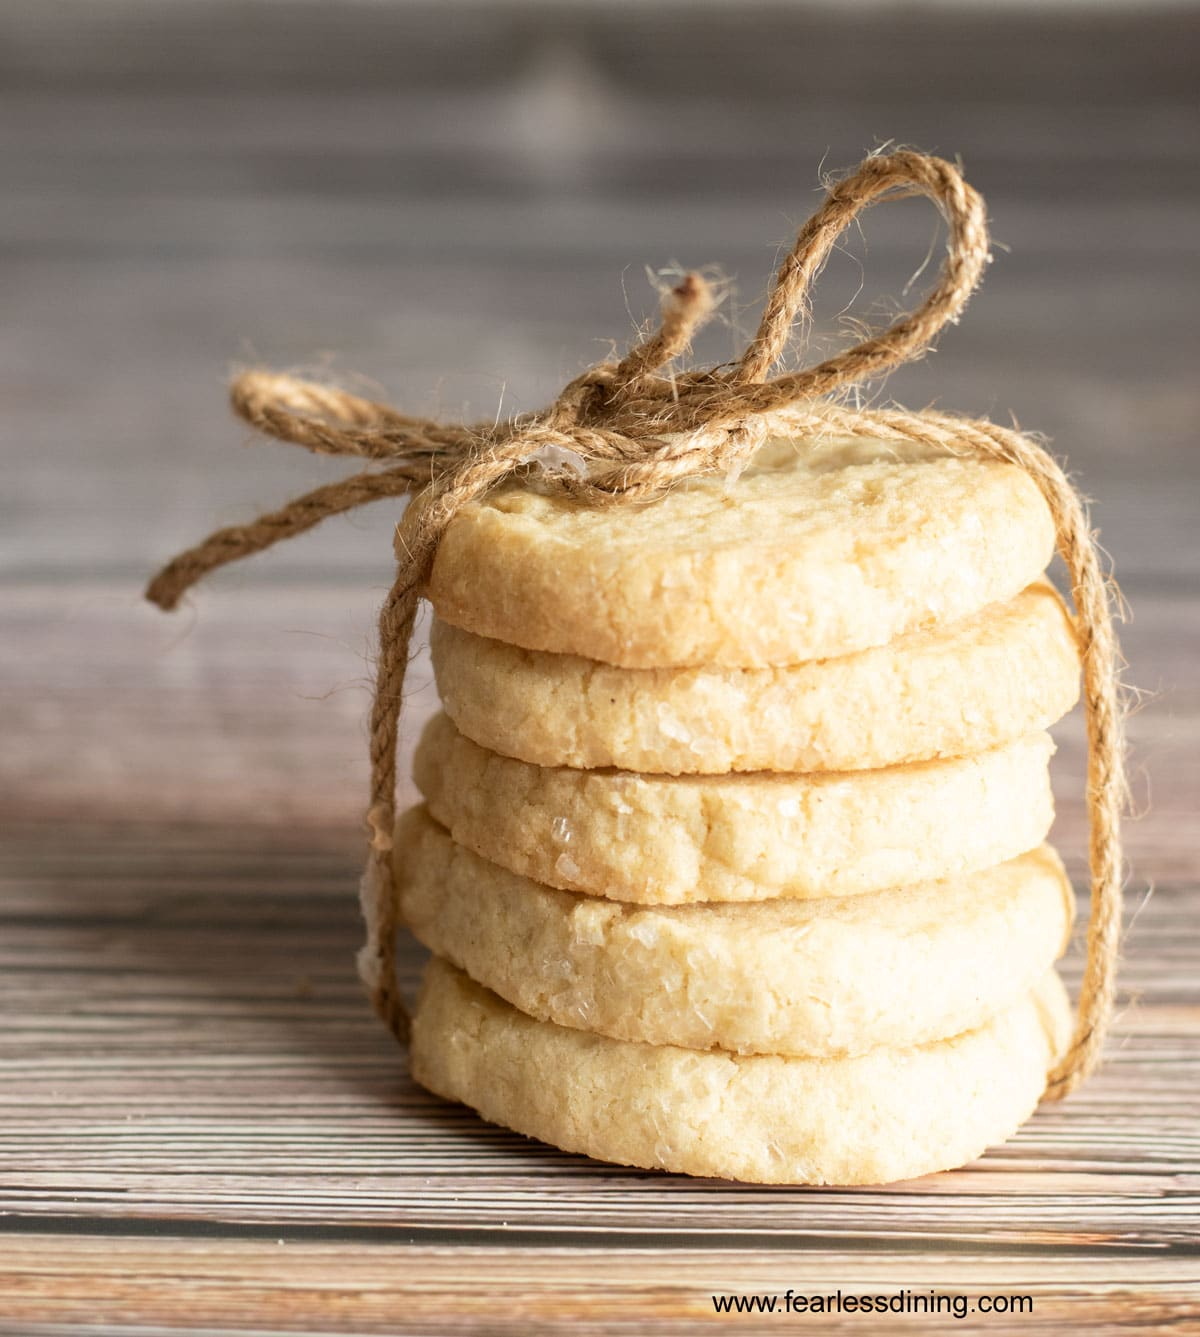 five sables stacked and tied with twine